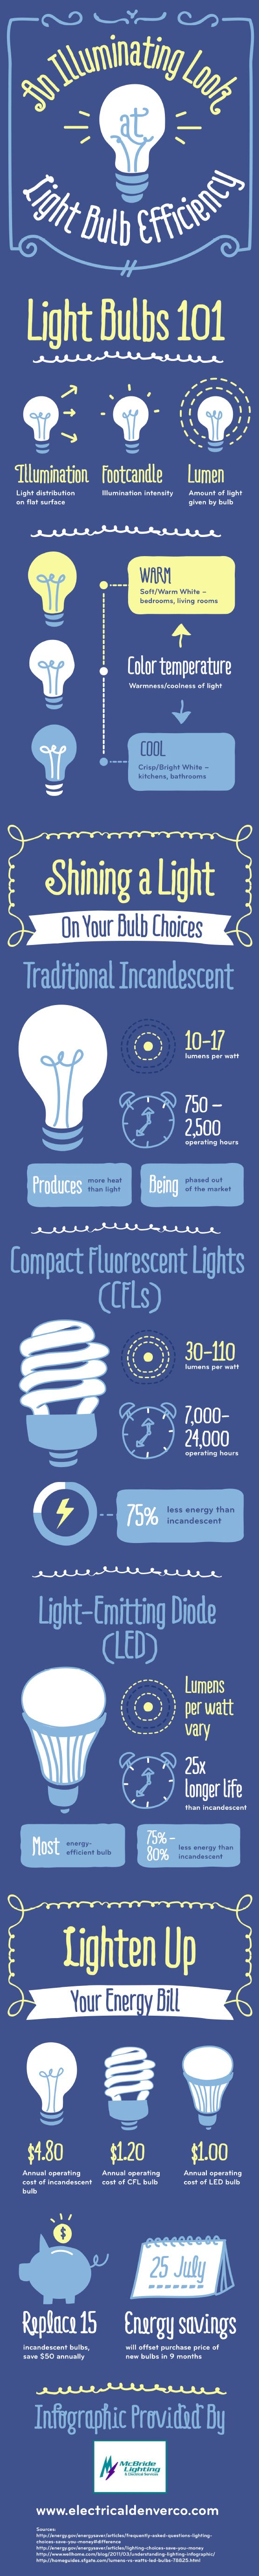 While the annual operating cost of an incandescent bulb is $4.80, the annual operating cost of an LED bulb is only $1.00. If you were to replace 15 in